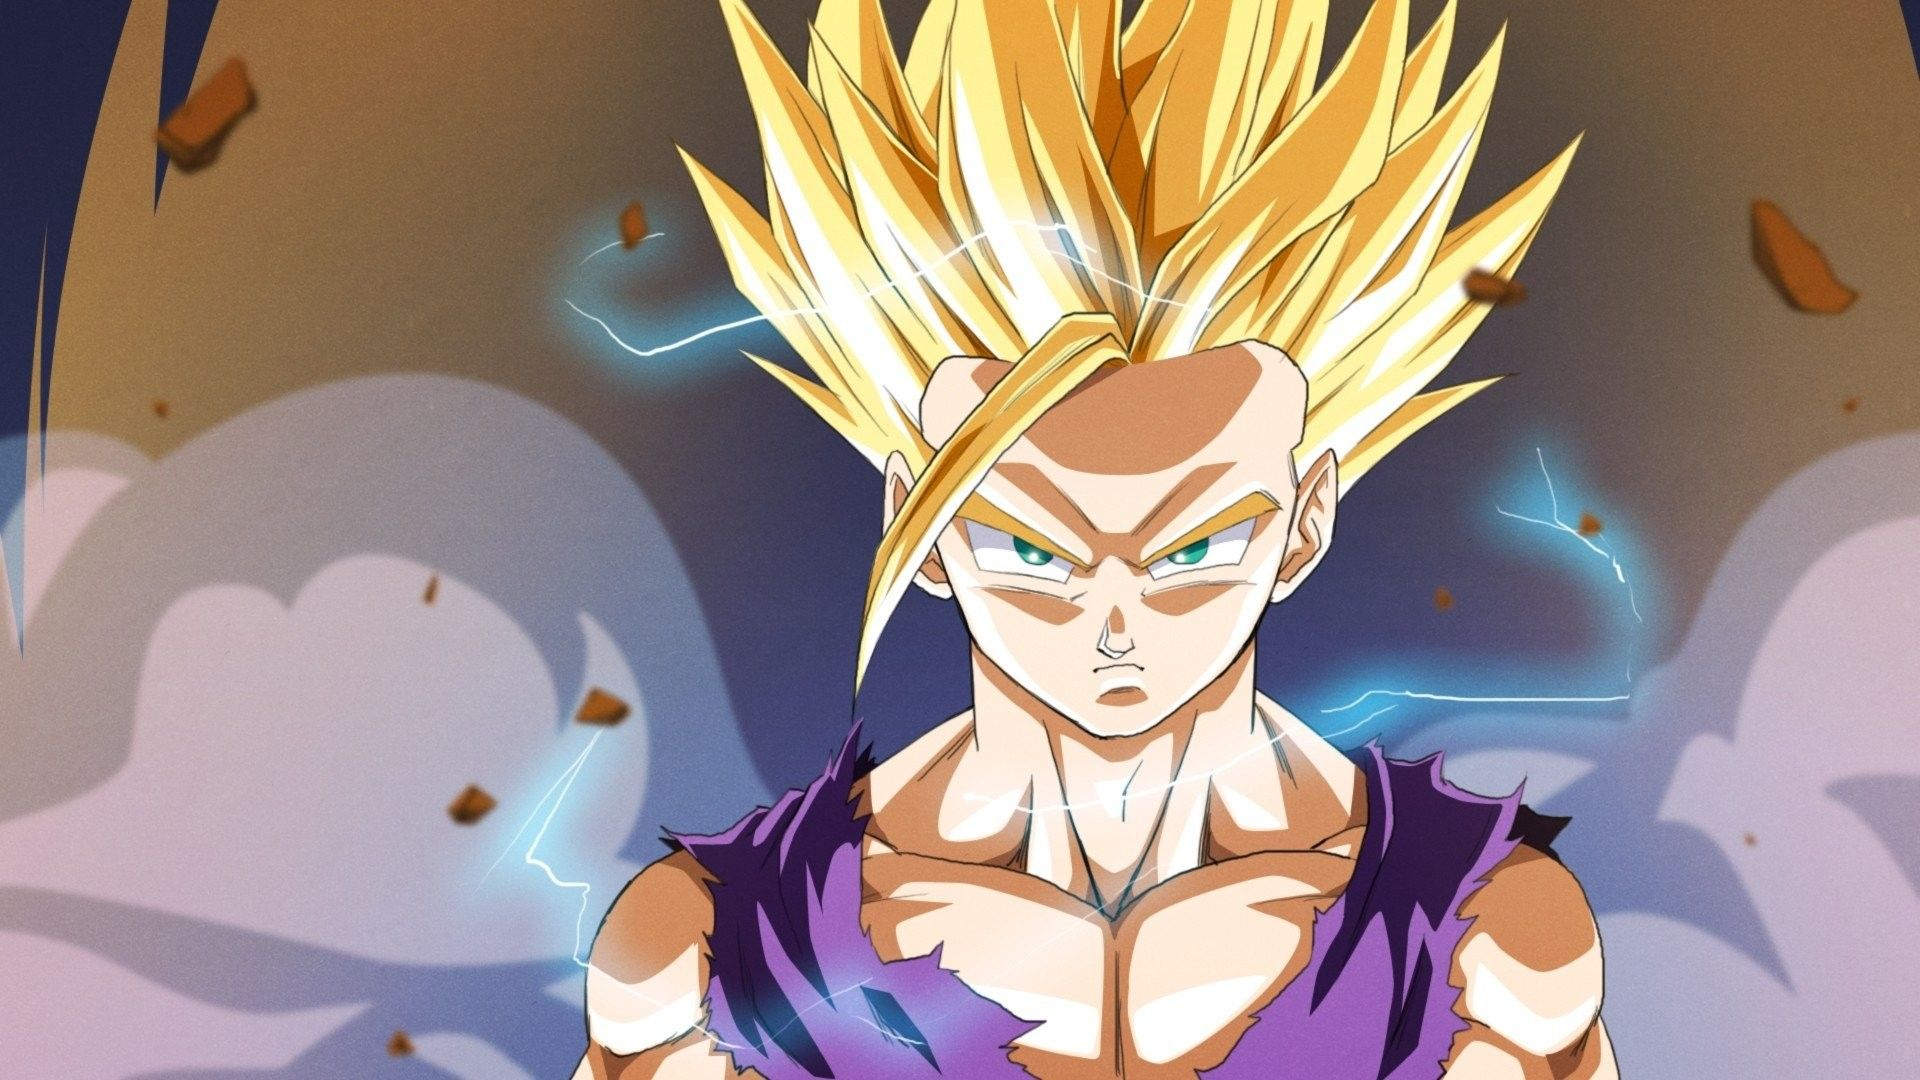 Dbz Ios Wallpapers Top Free Dbz Ios Backgrounds Wallpaperaccess